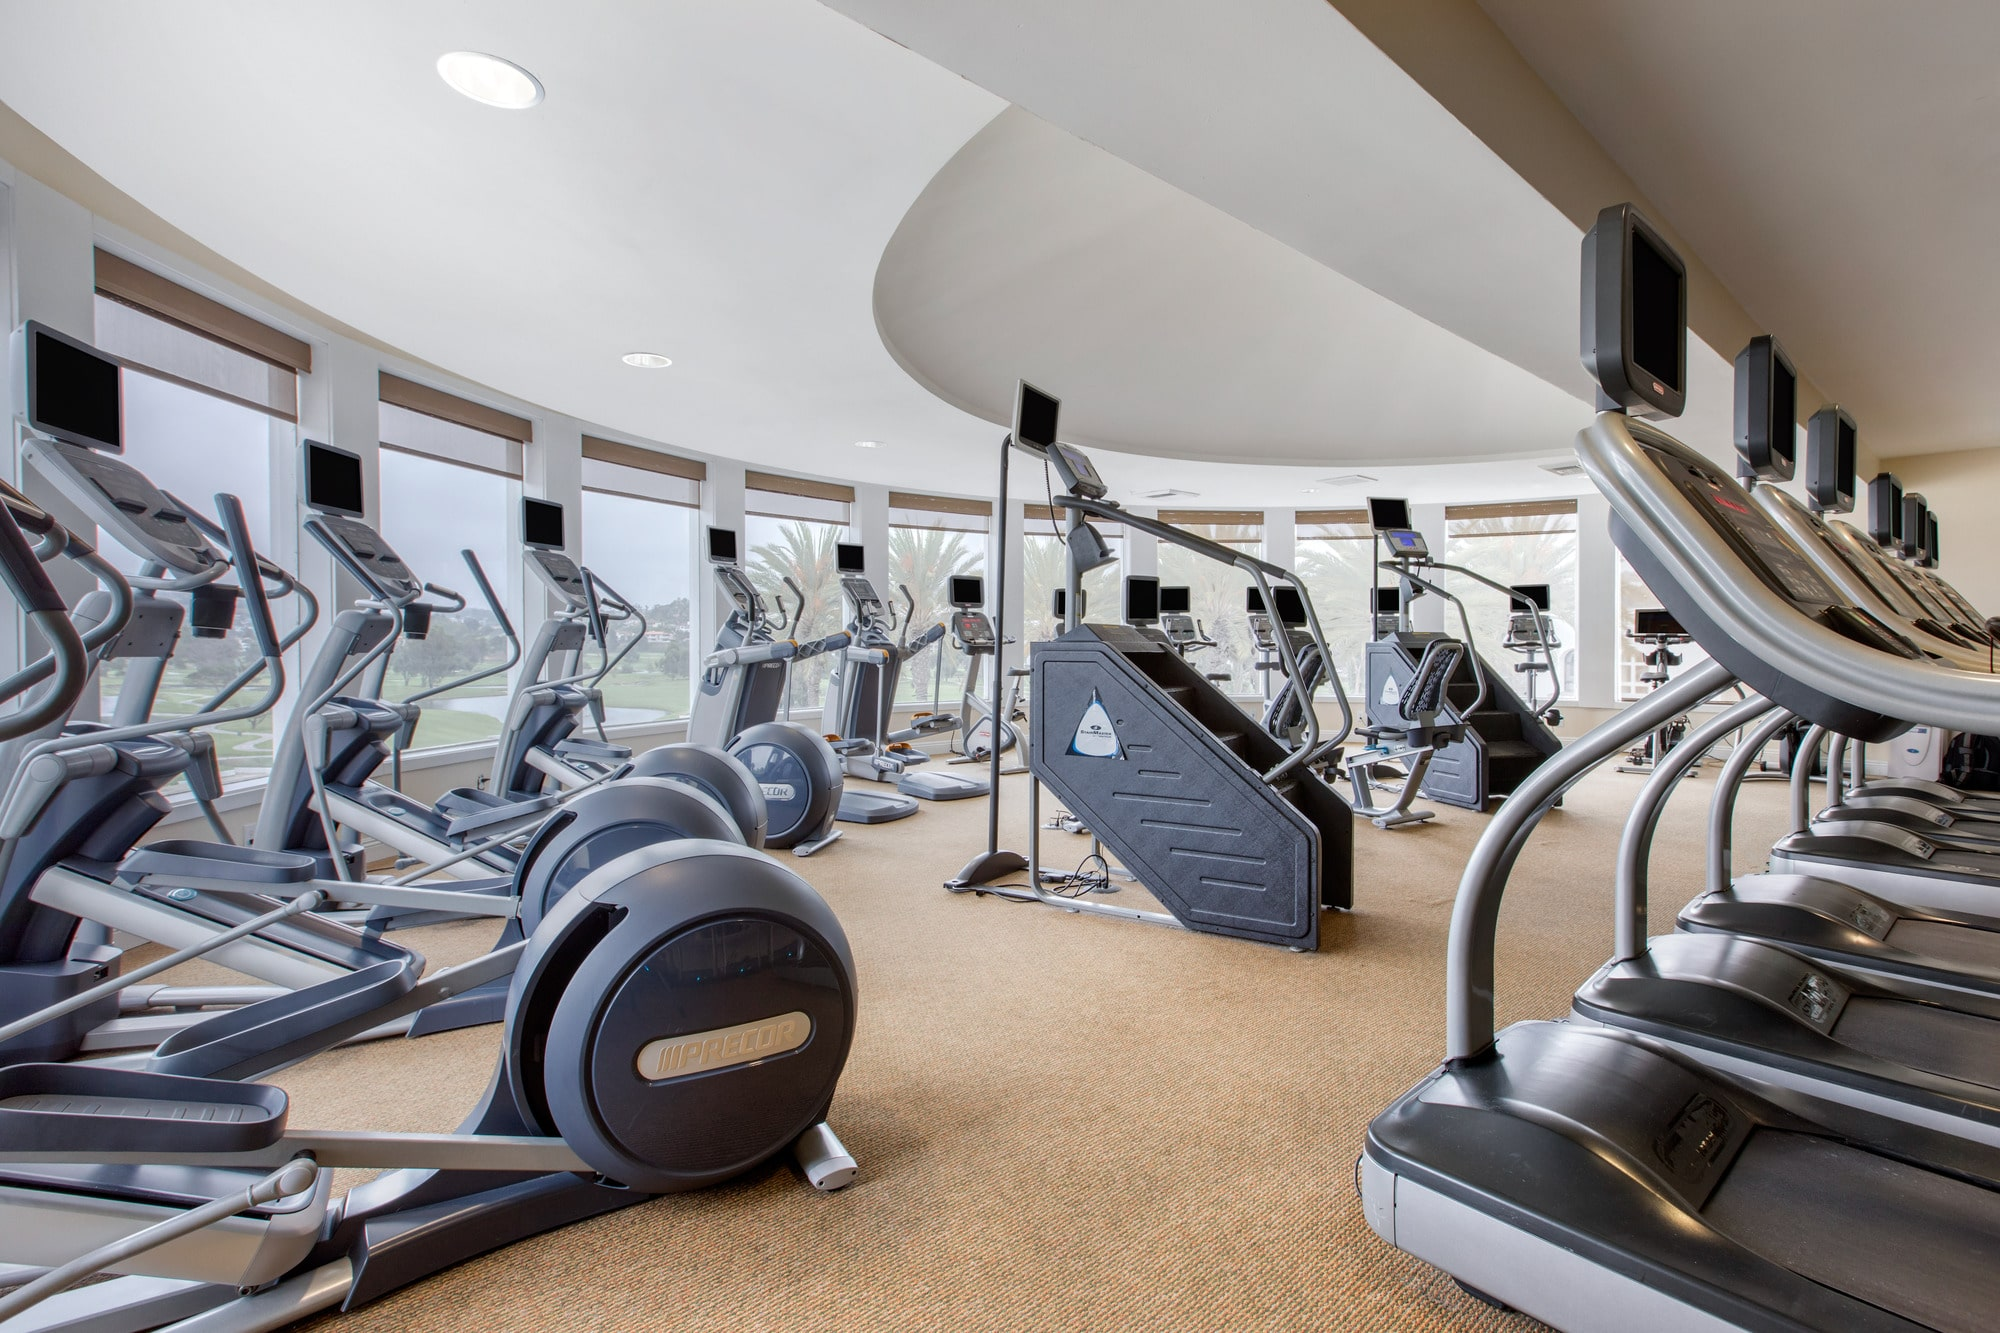 Cardio equipment inside the Athletic Club with views over the golf course.